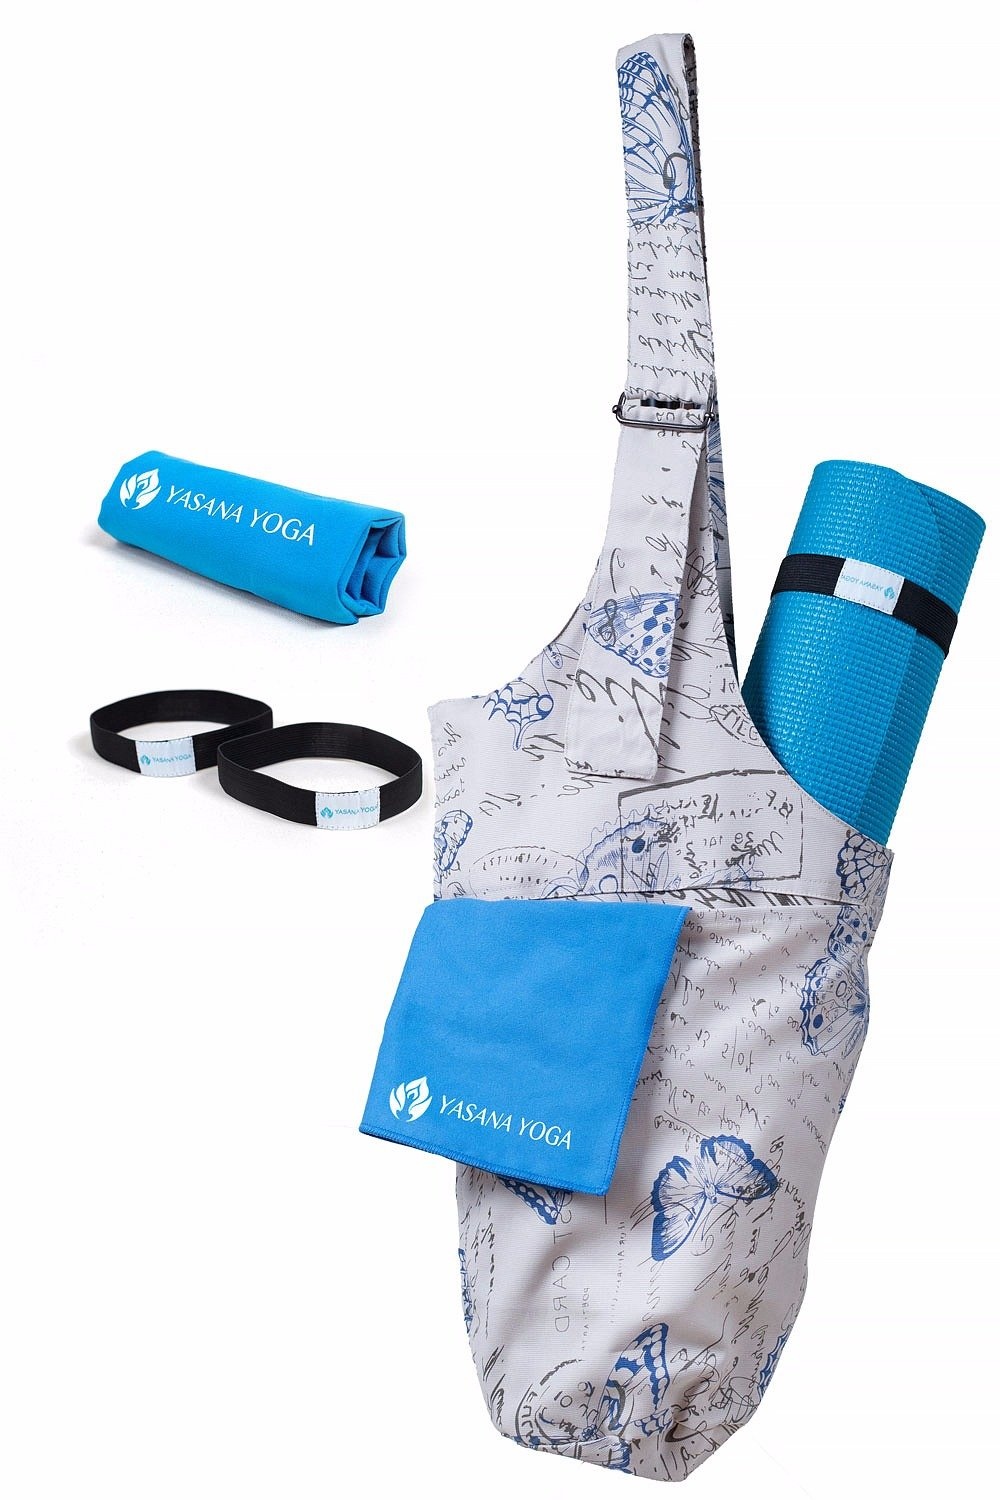 Yoga Mat Bag Sling Tote - with Adjustable Shoulder Strap & 2 Pockets | Includes 1 Microfiber Towel and 2 Elastic Straps | Fits Most Size Mats | Beautiful Butterfly Pattern